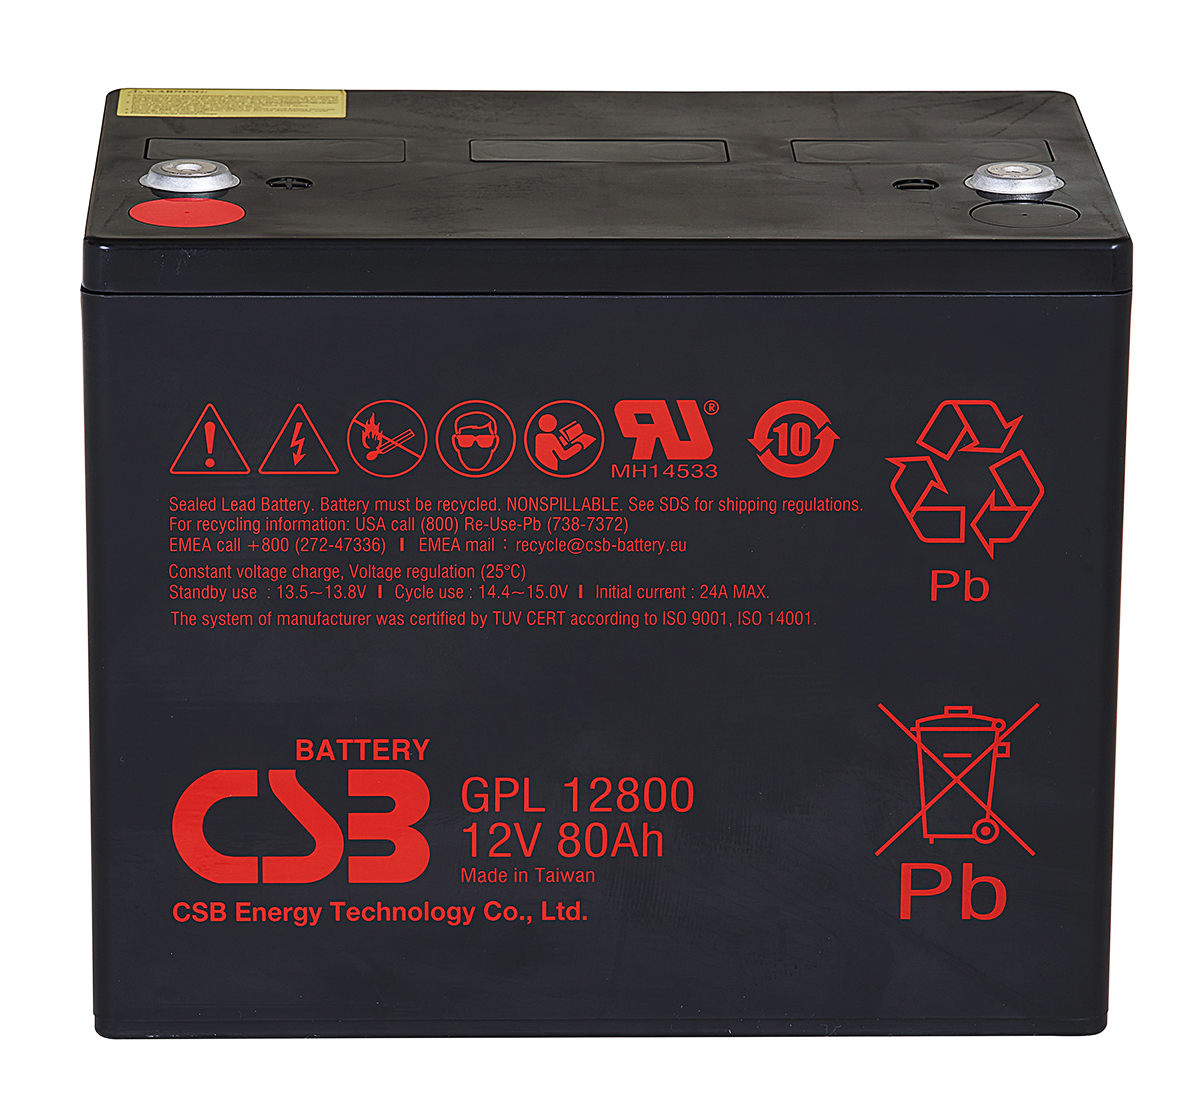 CSB GPL12800 12V 80Ah Lead Acid Battery